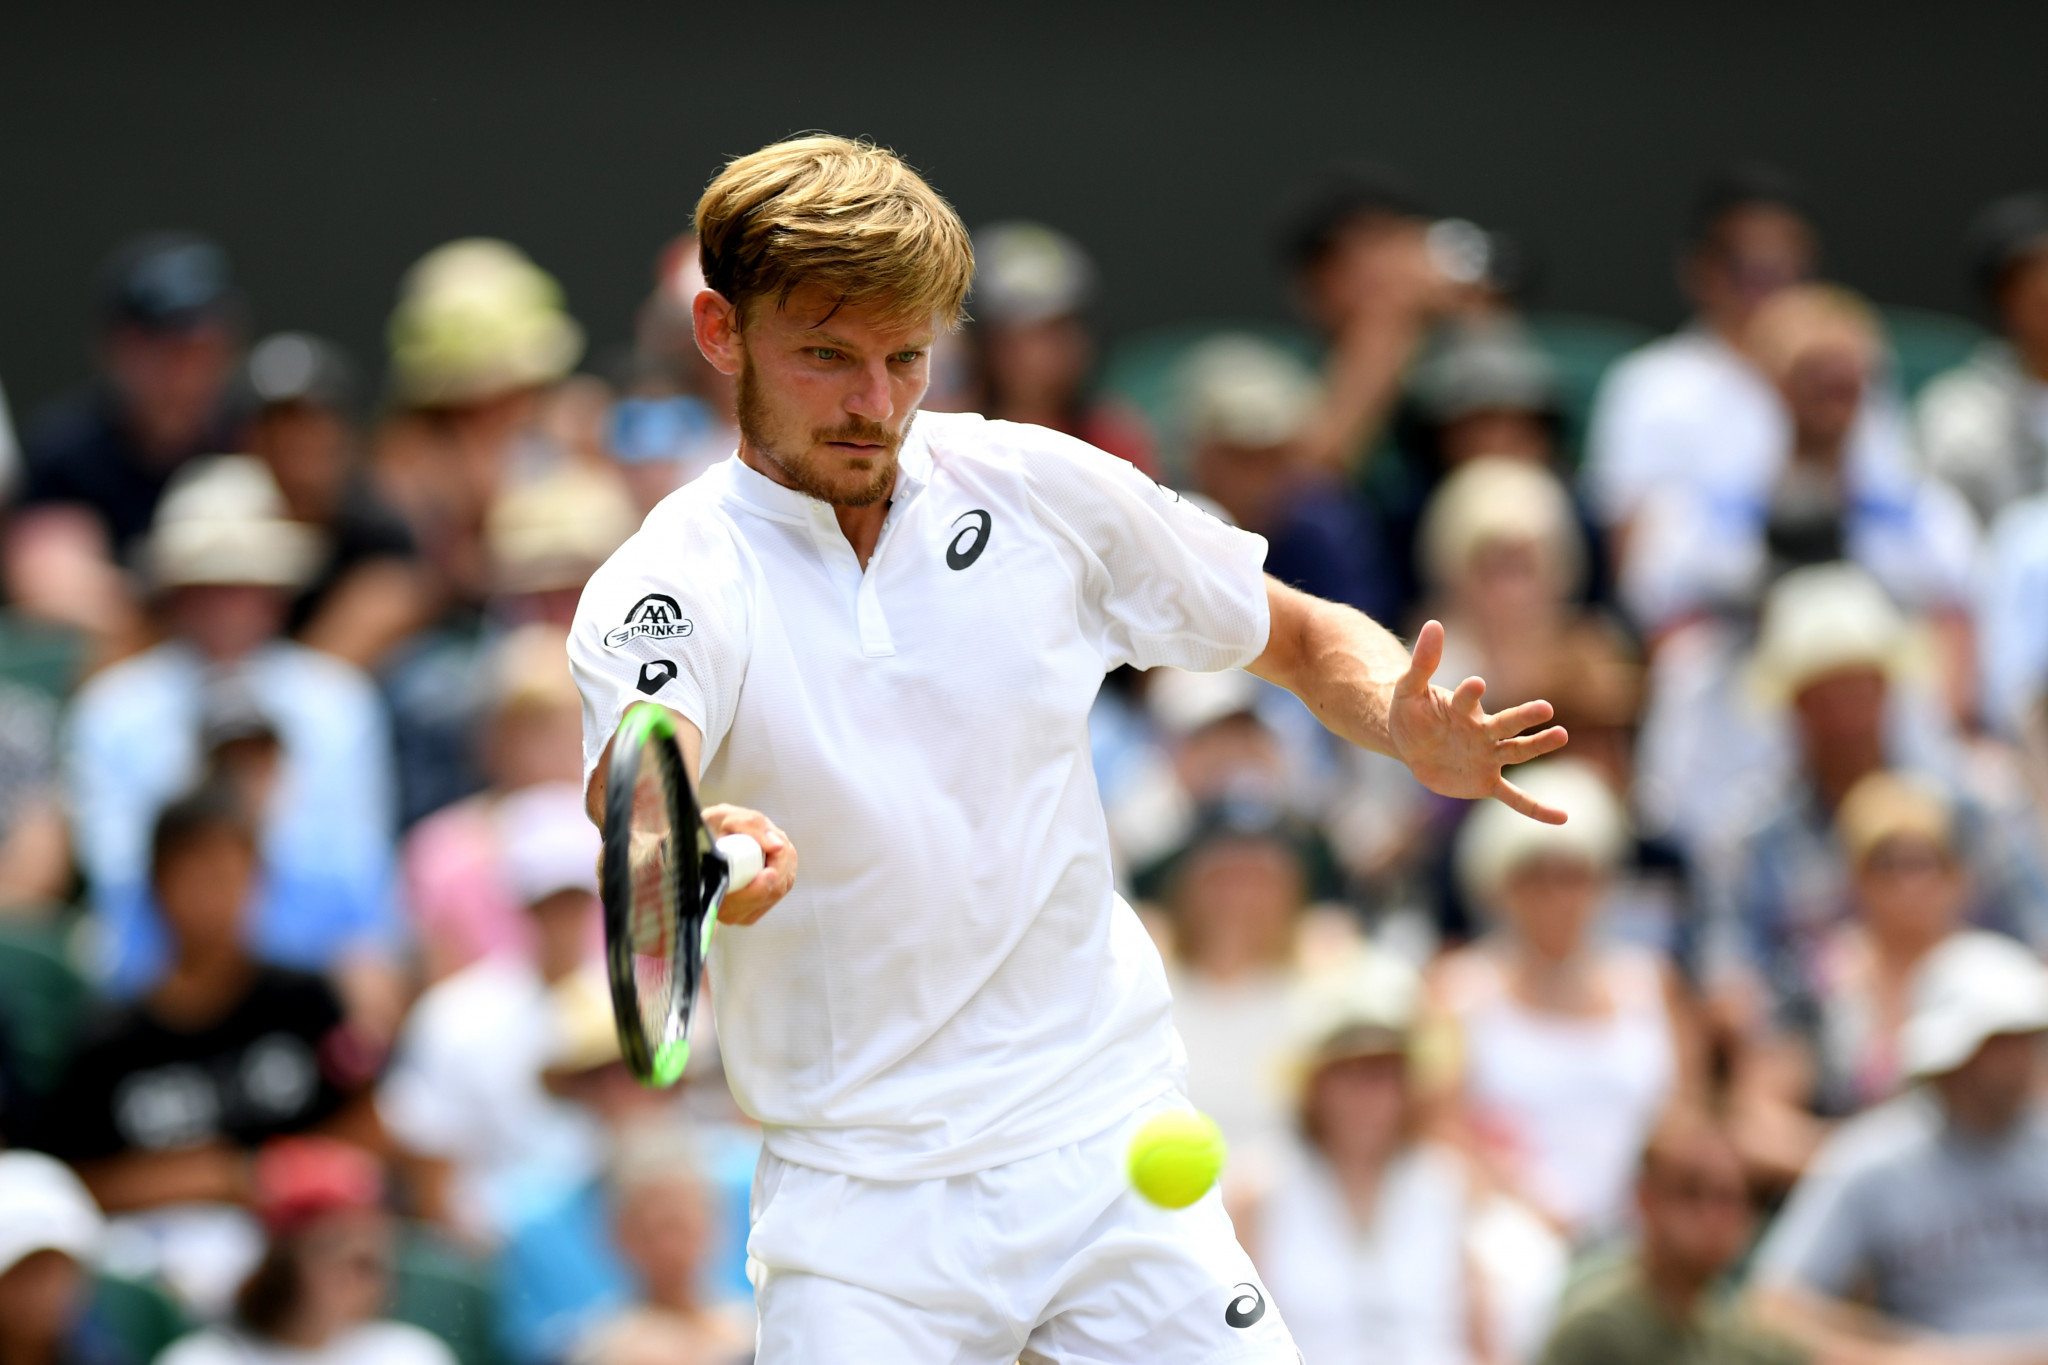 Belgium's Goffin started well, going a break up in the first set ©Getty Images